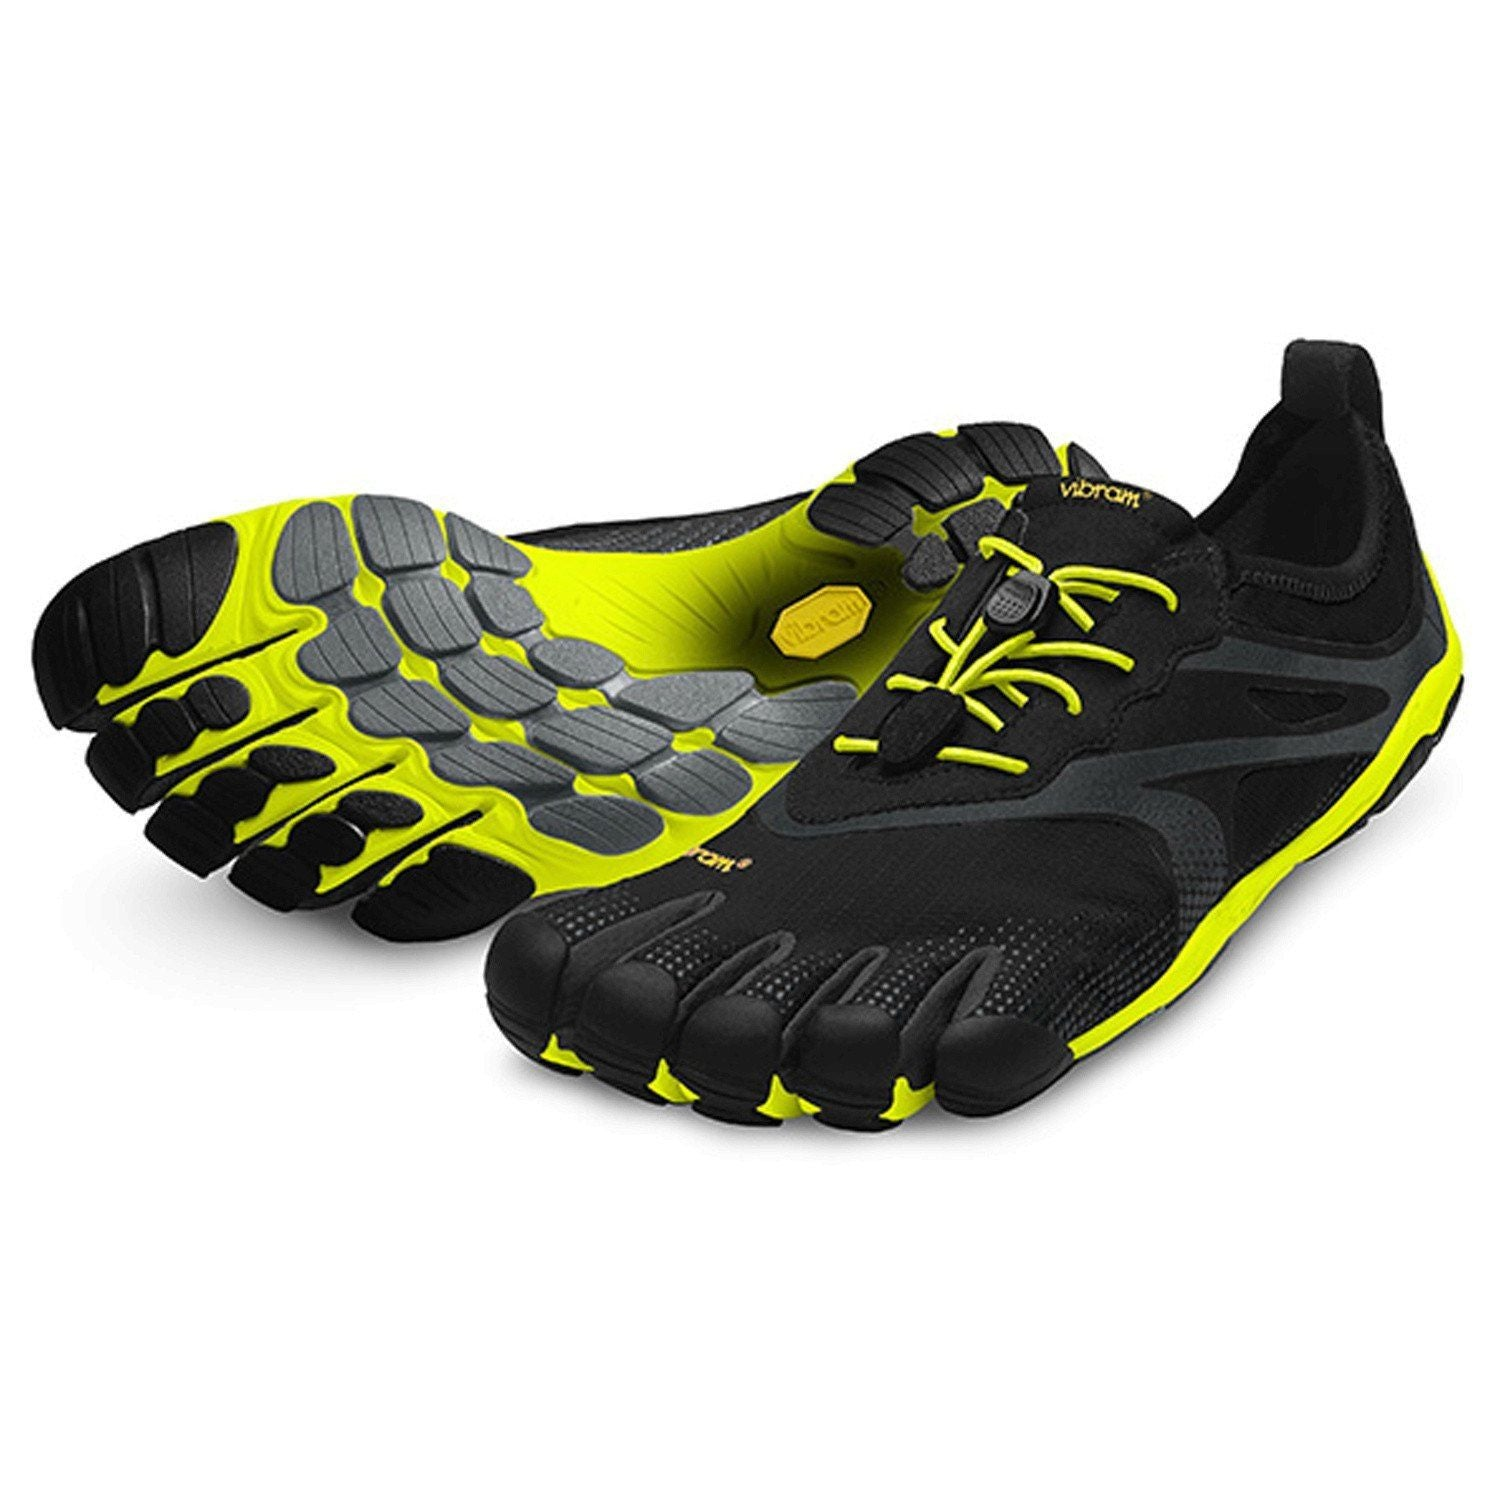 Vibram FiveFingers Mens Bikila Evo Shoes for Running